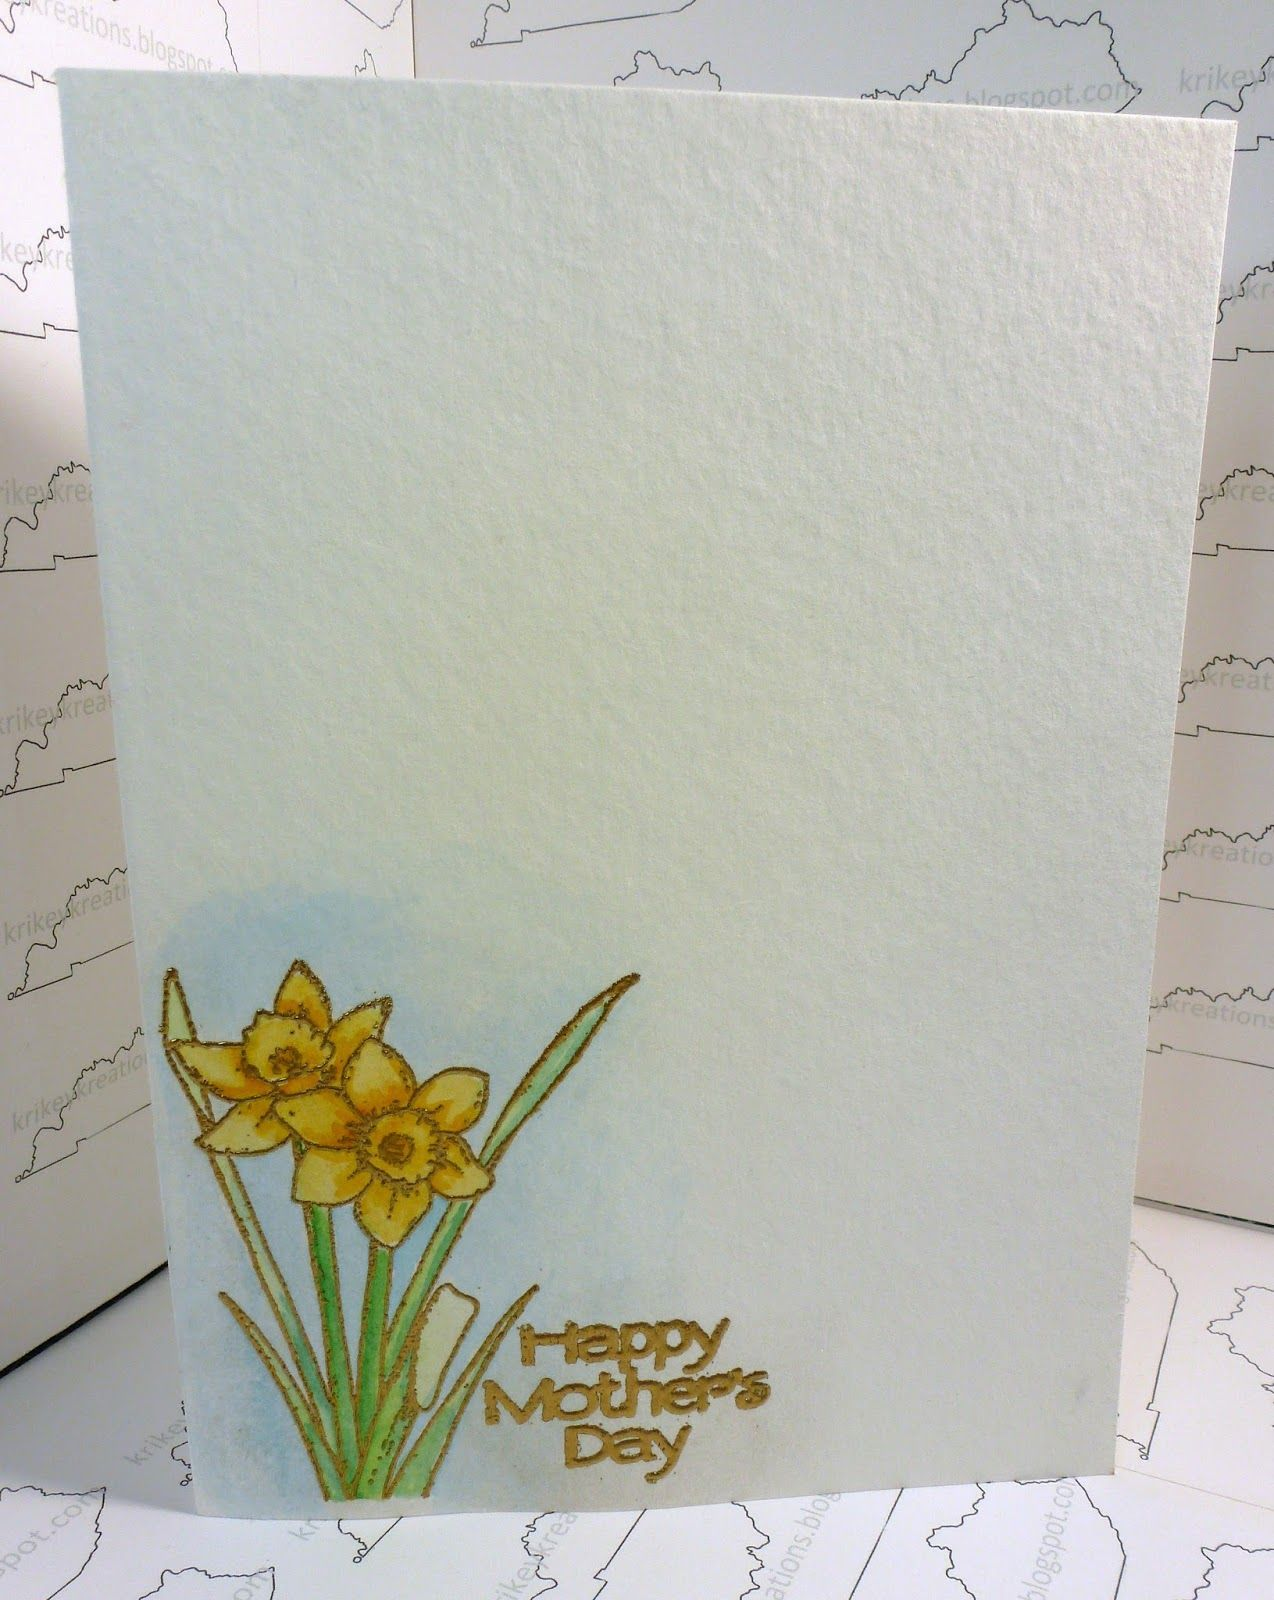 A handmade watercolor mothers day card measuring 5 6 78127 mm a handmade watercolor mothers day card measuring 5 6 78127 mm 175 mm using card stock strathmore watercolor greeting cards stamps gina k kristyandbryce Choice Image